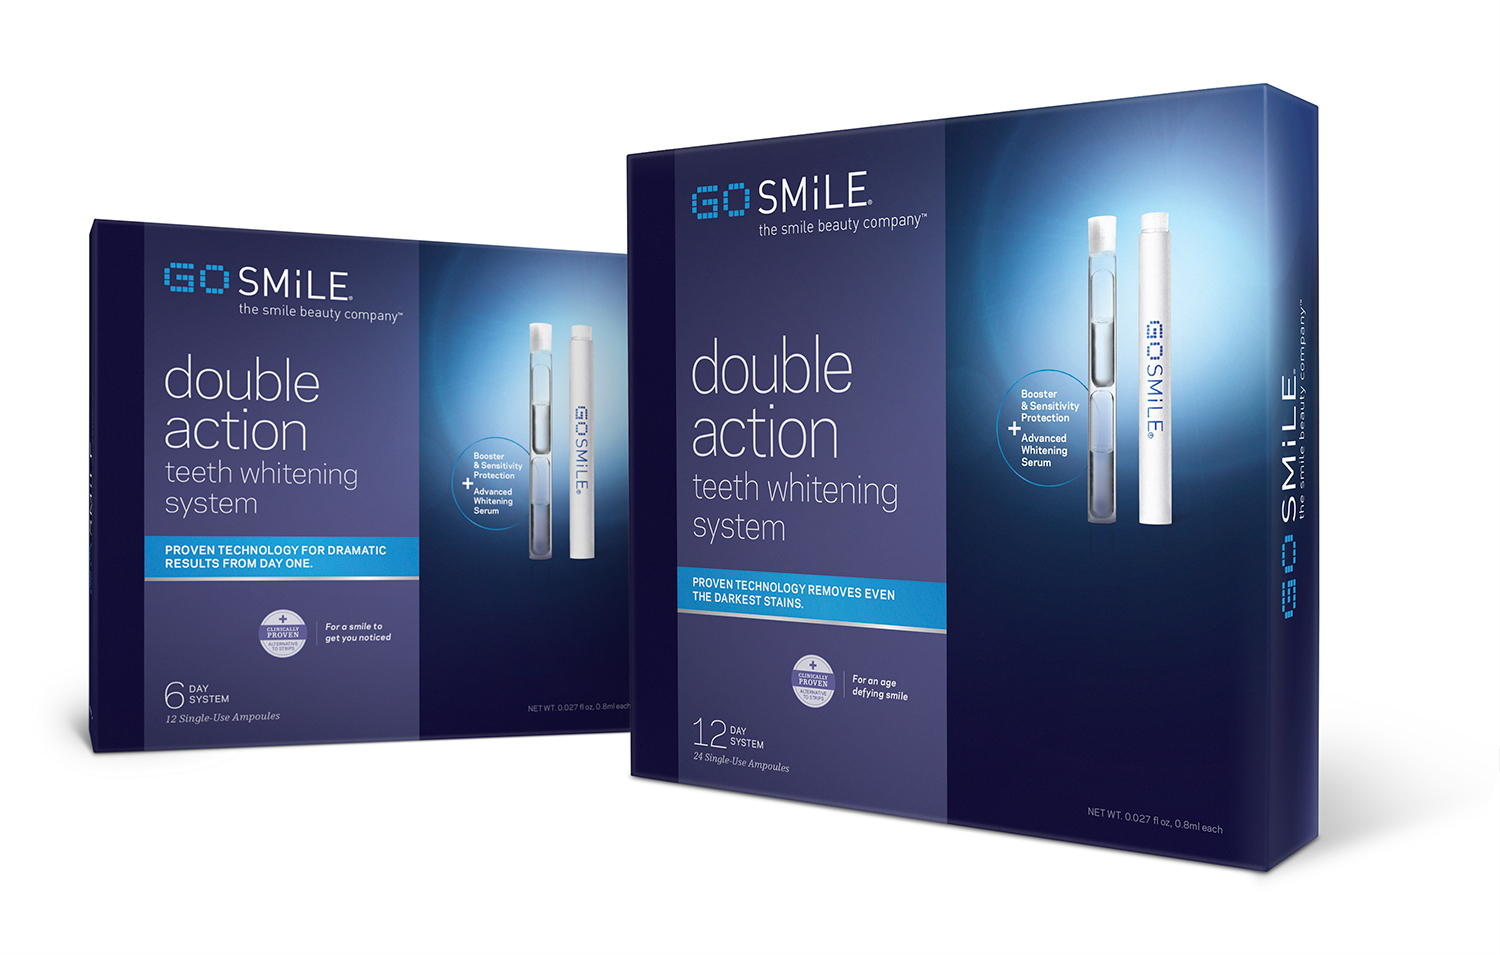 GO SMiLE Double Action Whitening System